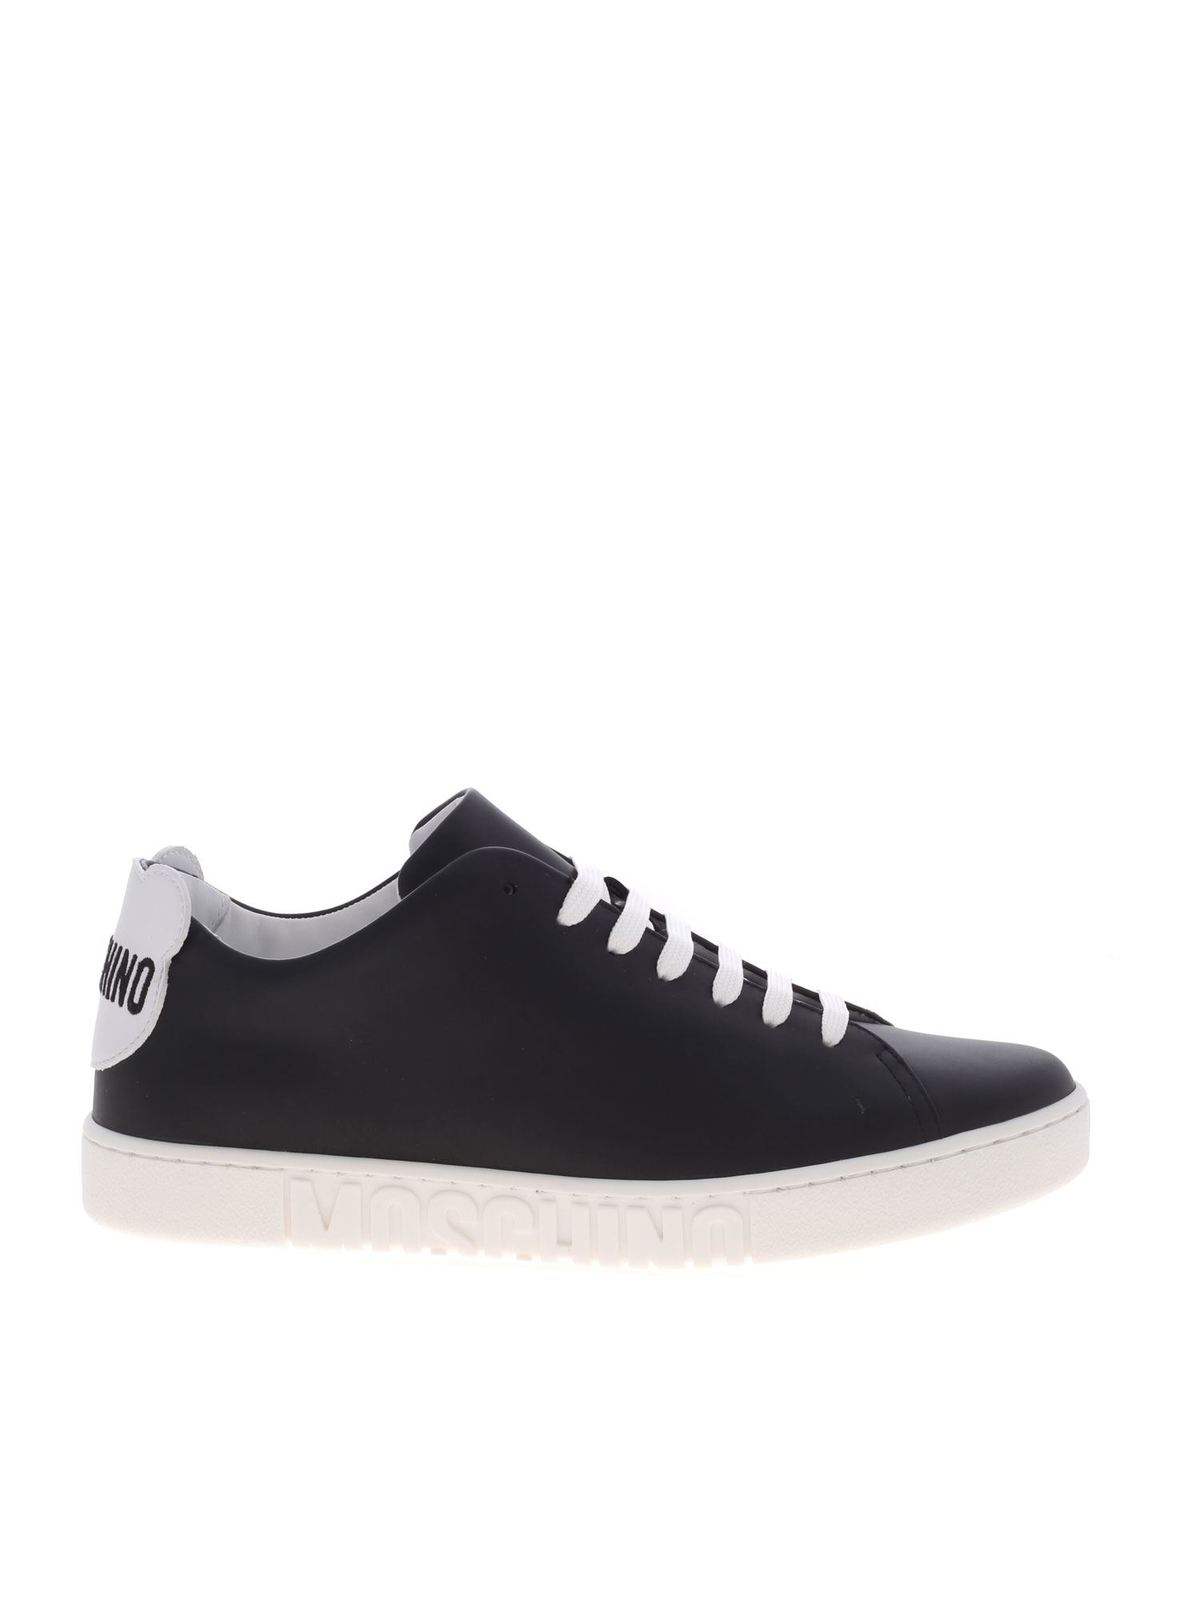 Moschino TEDDY LOGO AND PATCH SNEAKERS IN BLACK